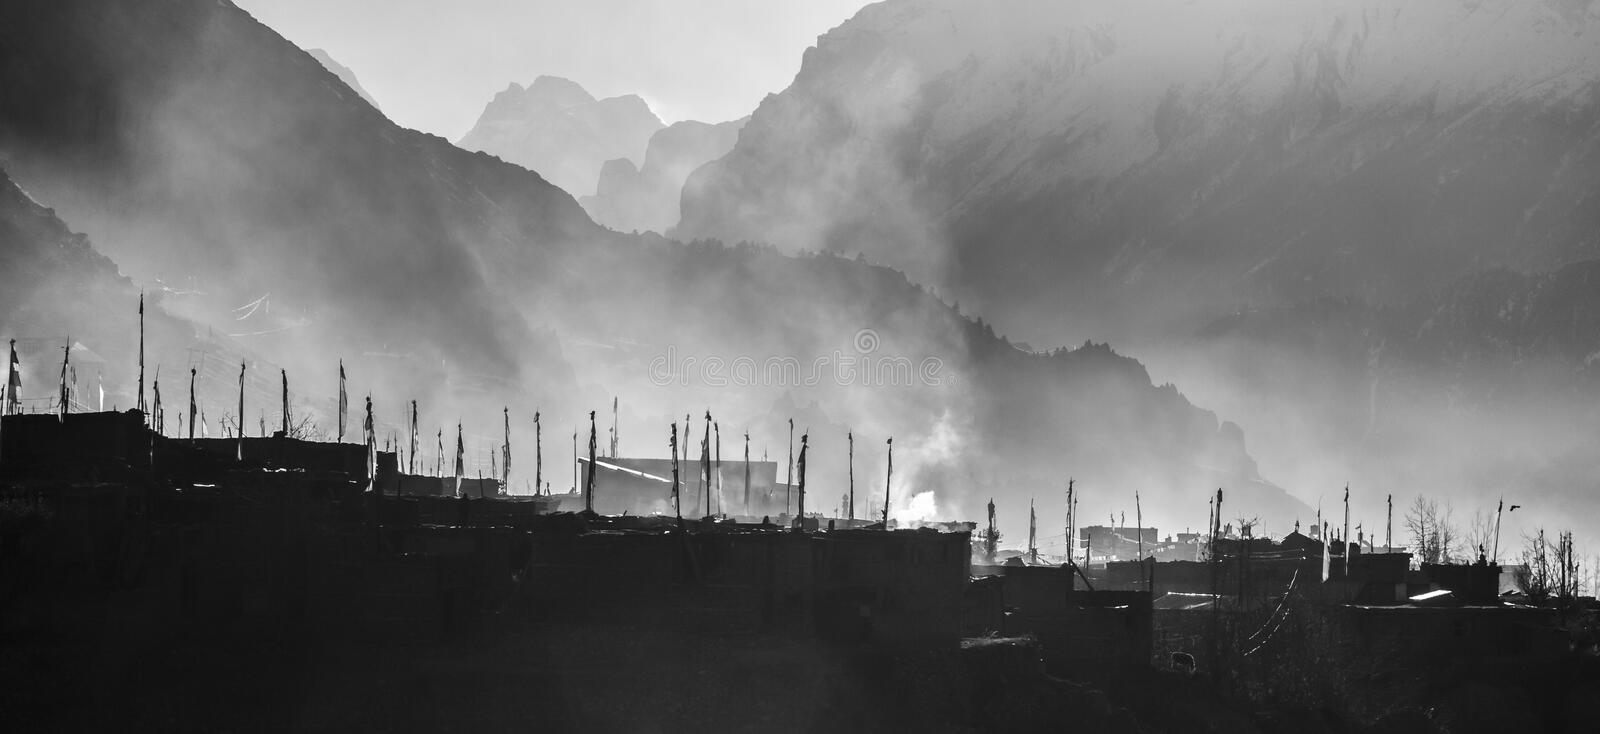 Prayer flags in village Manang. Foggy morning, Nepal, Himalaya, Annapurna conservation area stock image